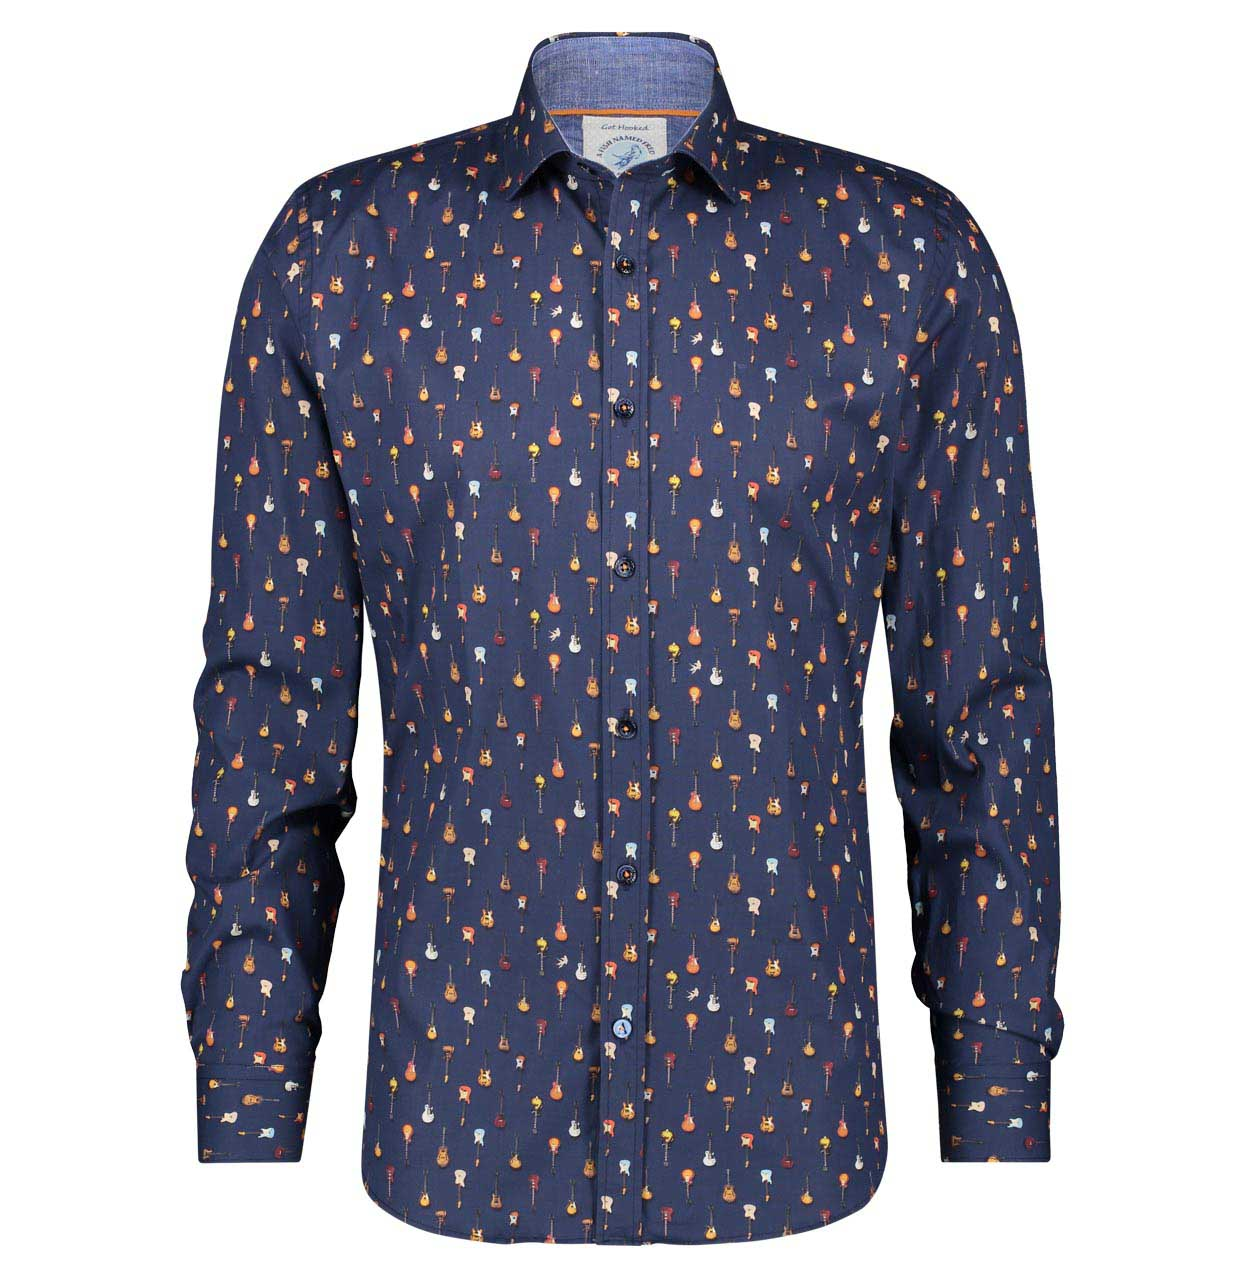 A Fish named Fred Shirt 22.01.015 Navy blue 22.01.015 marine Maat S